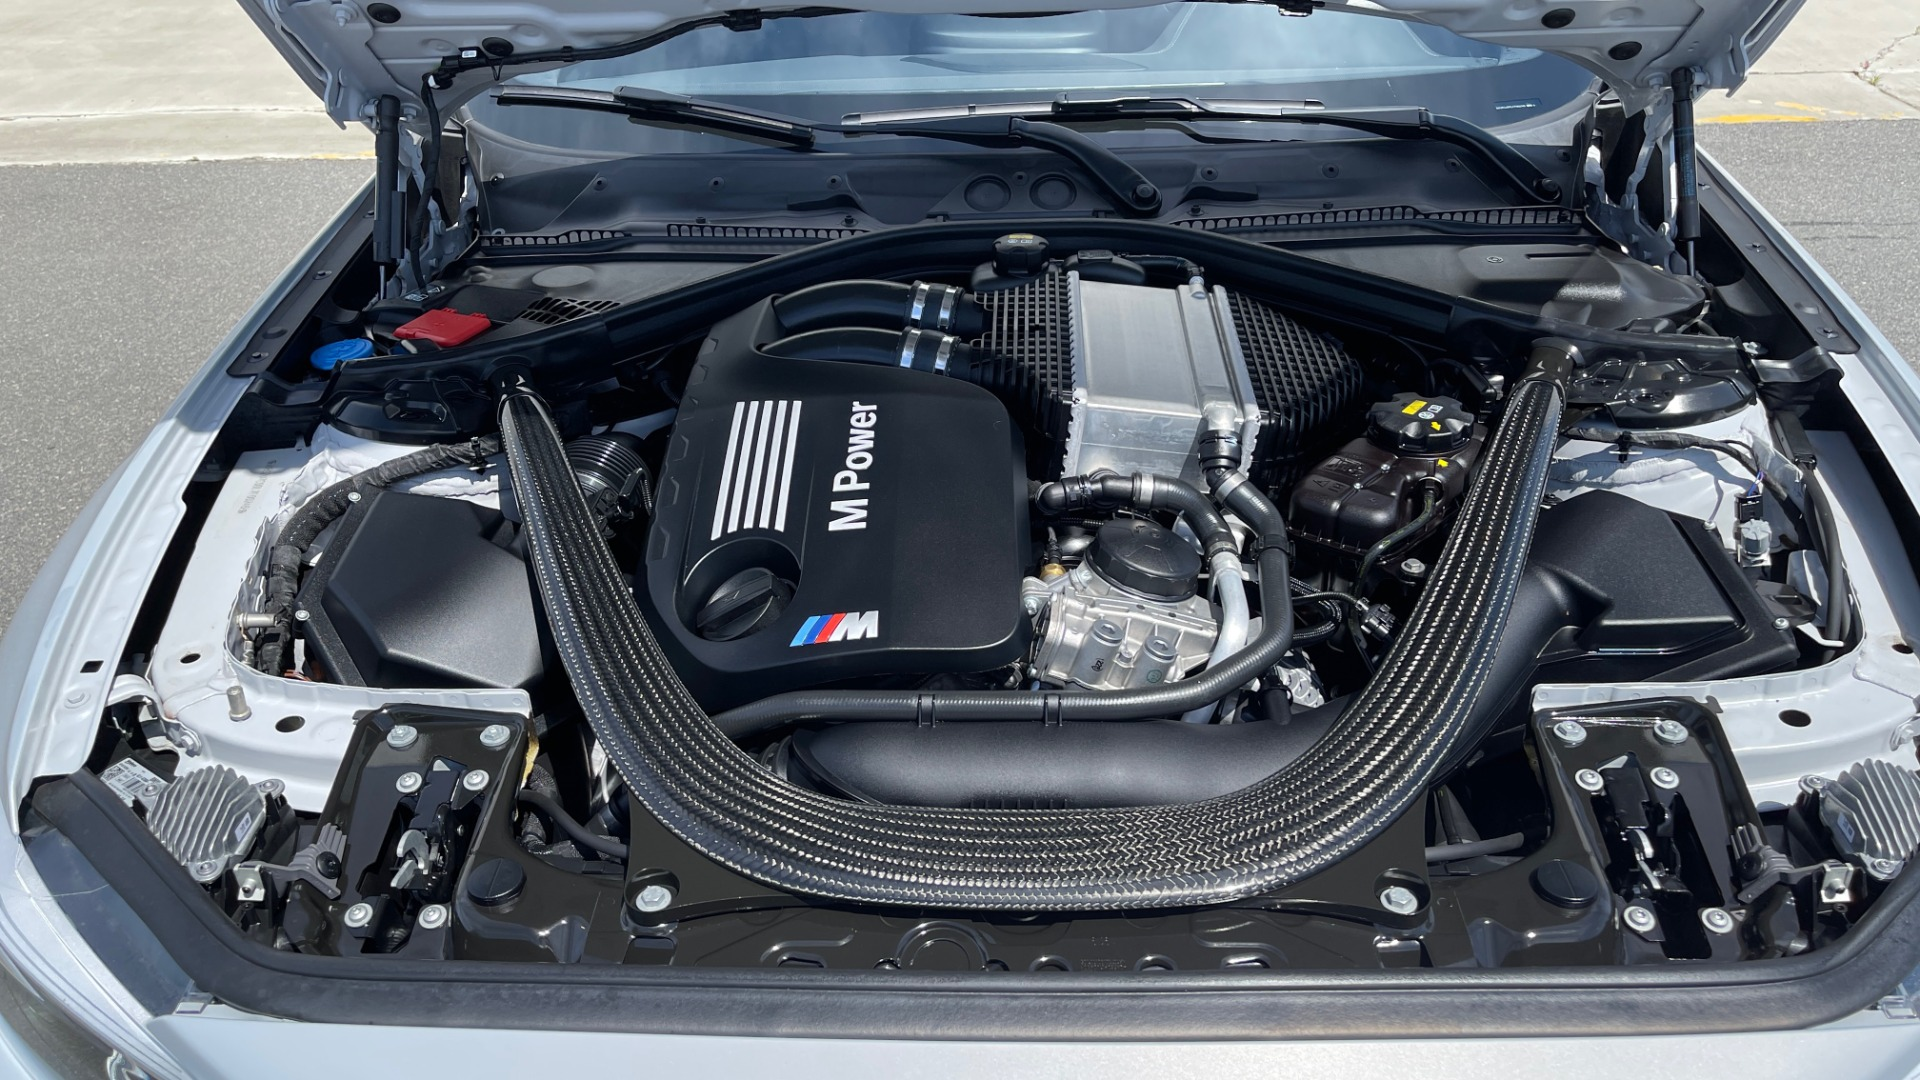 Used 2020 BMW M2 COMPETITION 405HP / COUPE / MANUAL / NAV / H/K SOUND / REARVIEW for sale $64,388 at Formula Imports in Charlotte NC 28227 8